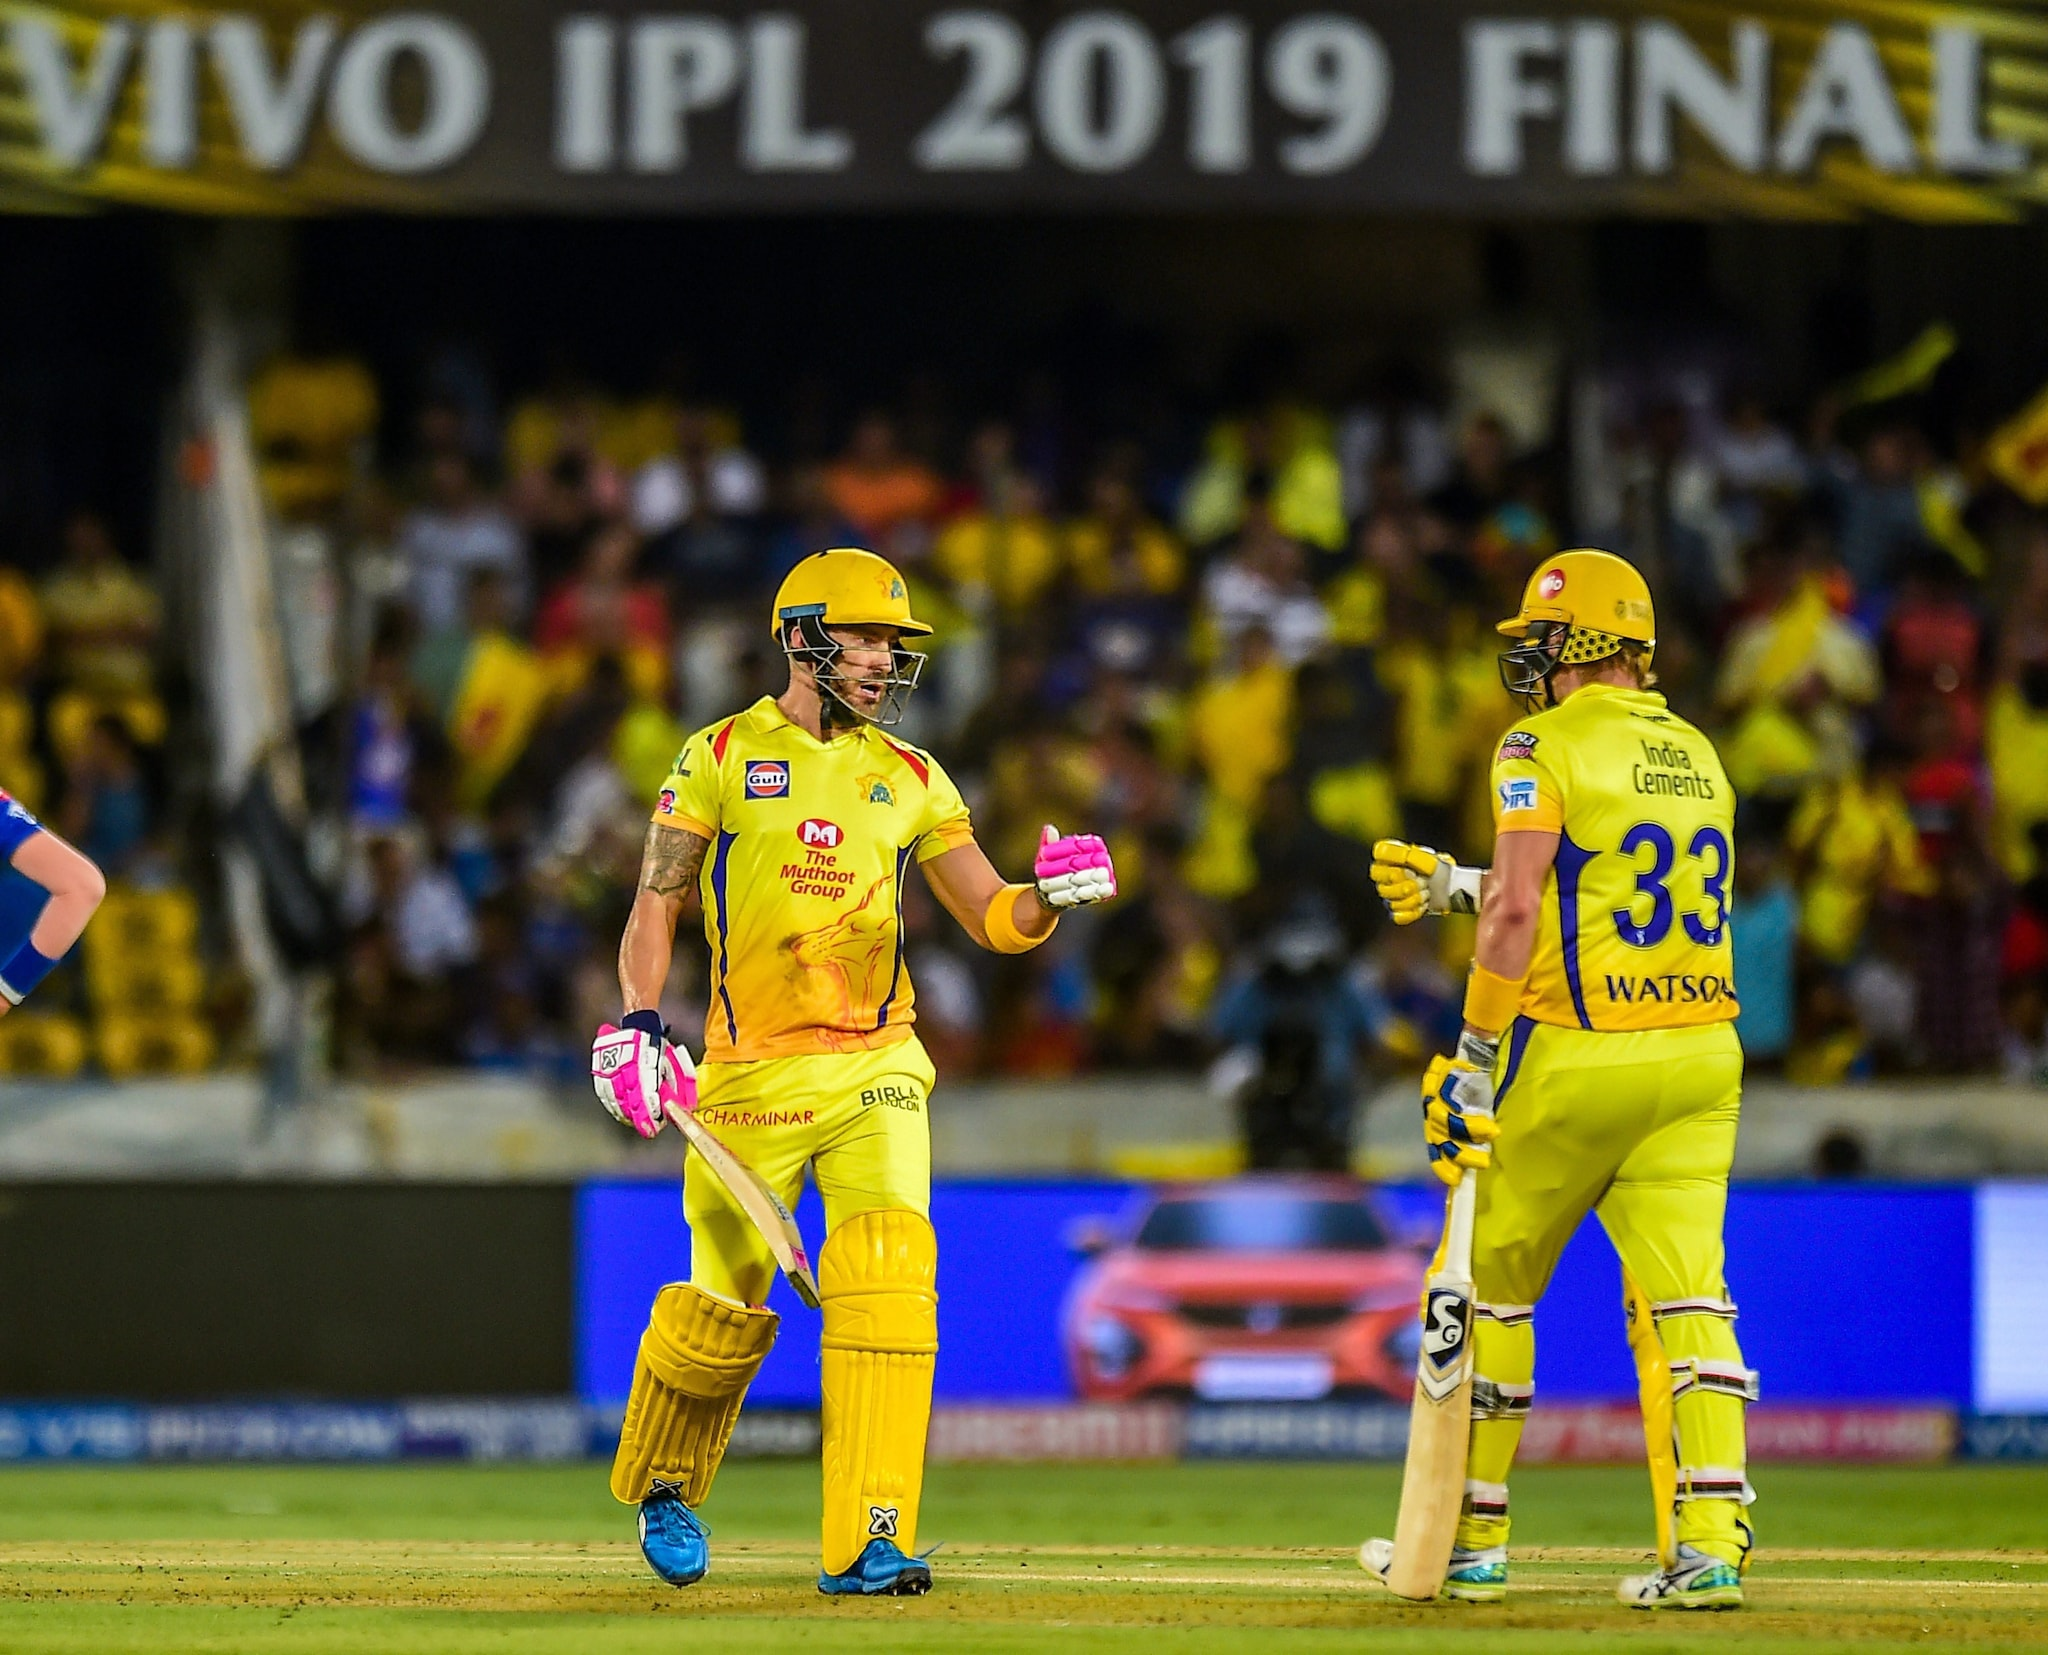 Chennai Super Kings (CSK) openers Shane Watson and Faf du Plessis during the IPL final on Sunday | PTI